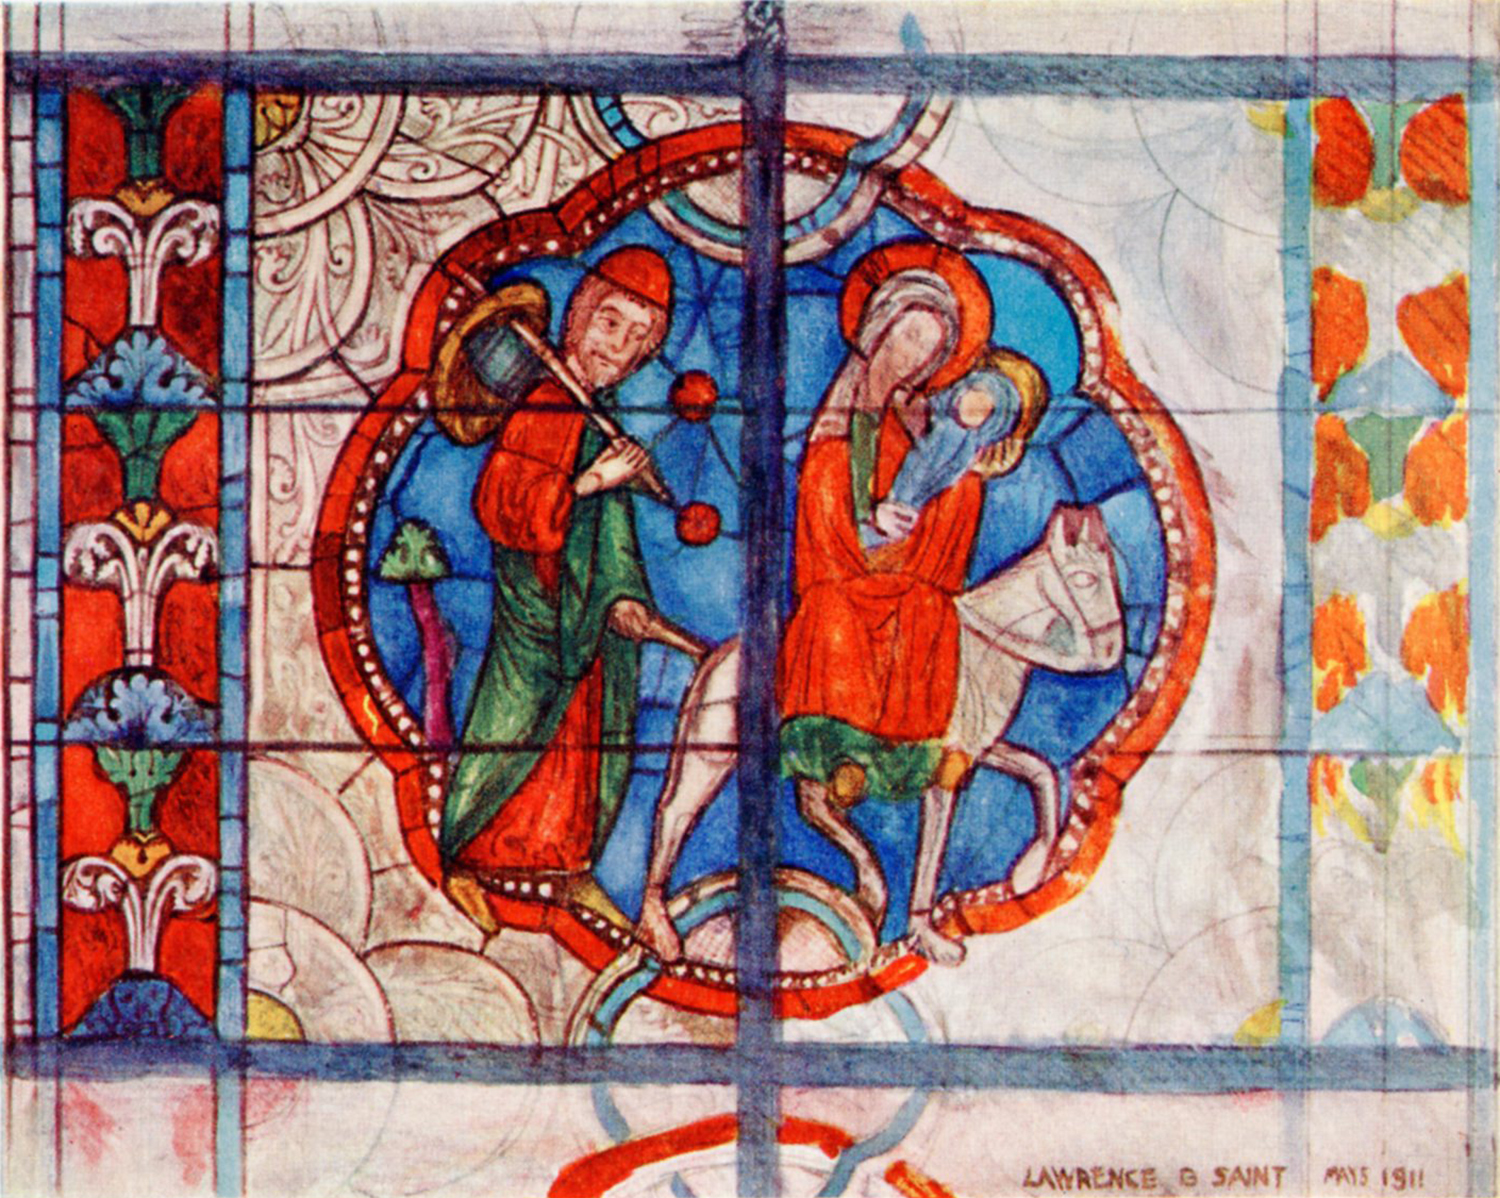 Figure 2:Lawrence B. Saint, 1911 watercolor rendering of the scene of the Flight into Egypt from the church of Sainte-Radegonde in Poitiers (reproduced in Hugh Arnold and Lawrence B. Saint,  Stained Glass of the Middle Ages in England and France . London, 1913, pl. XV).